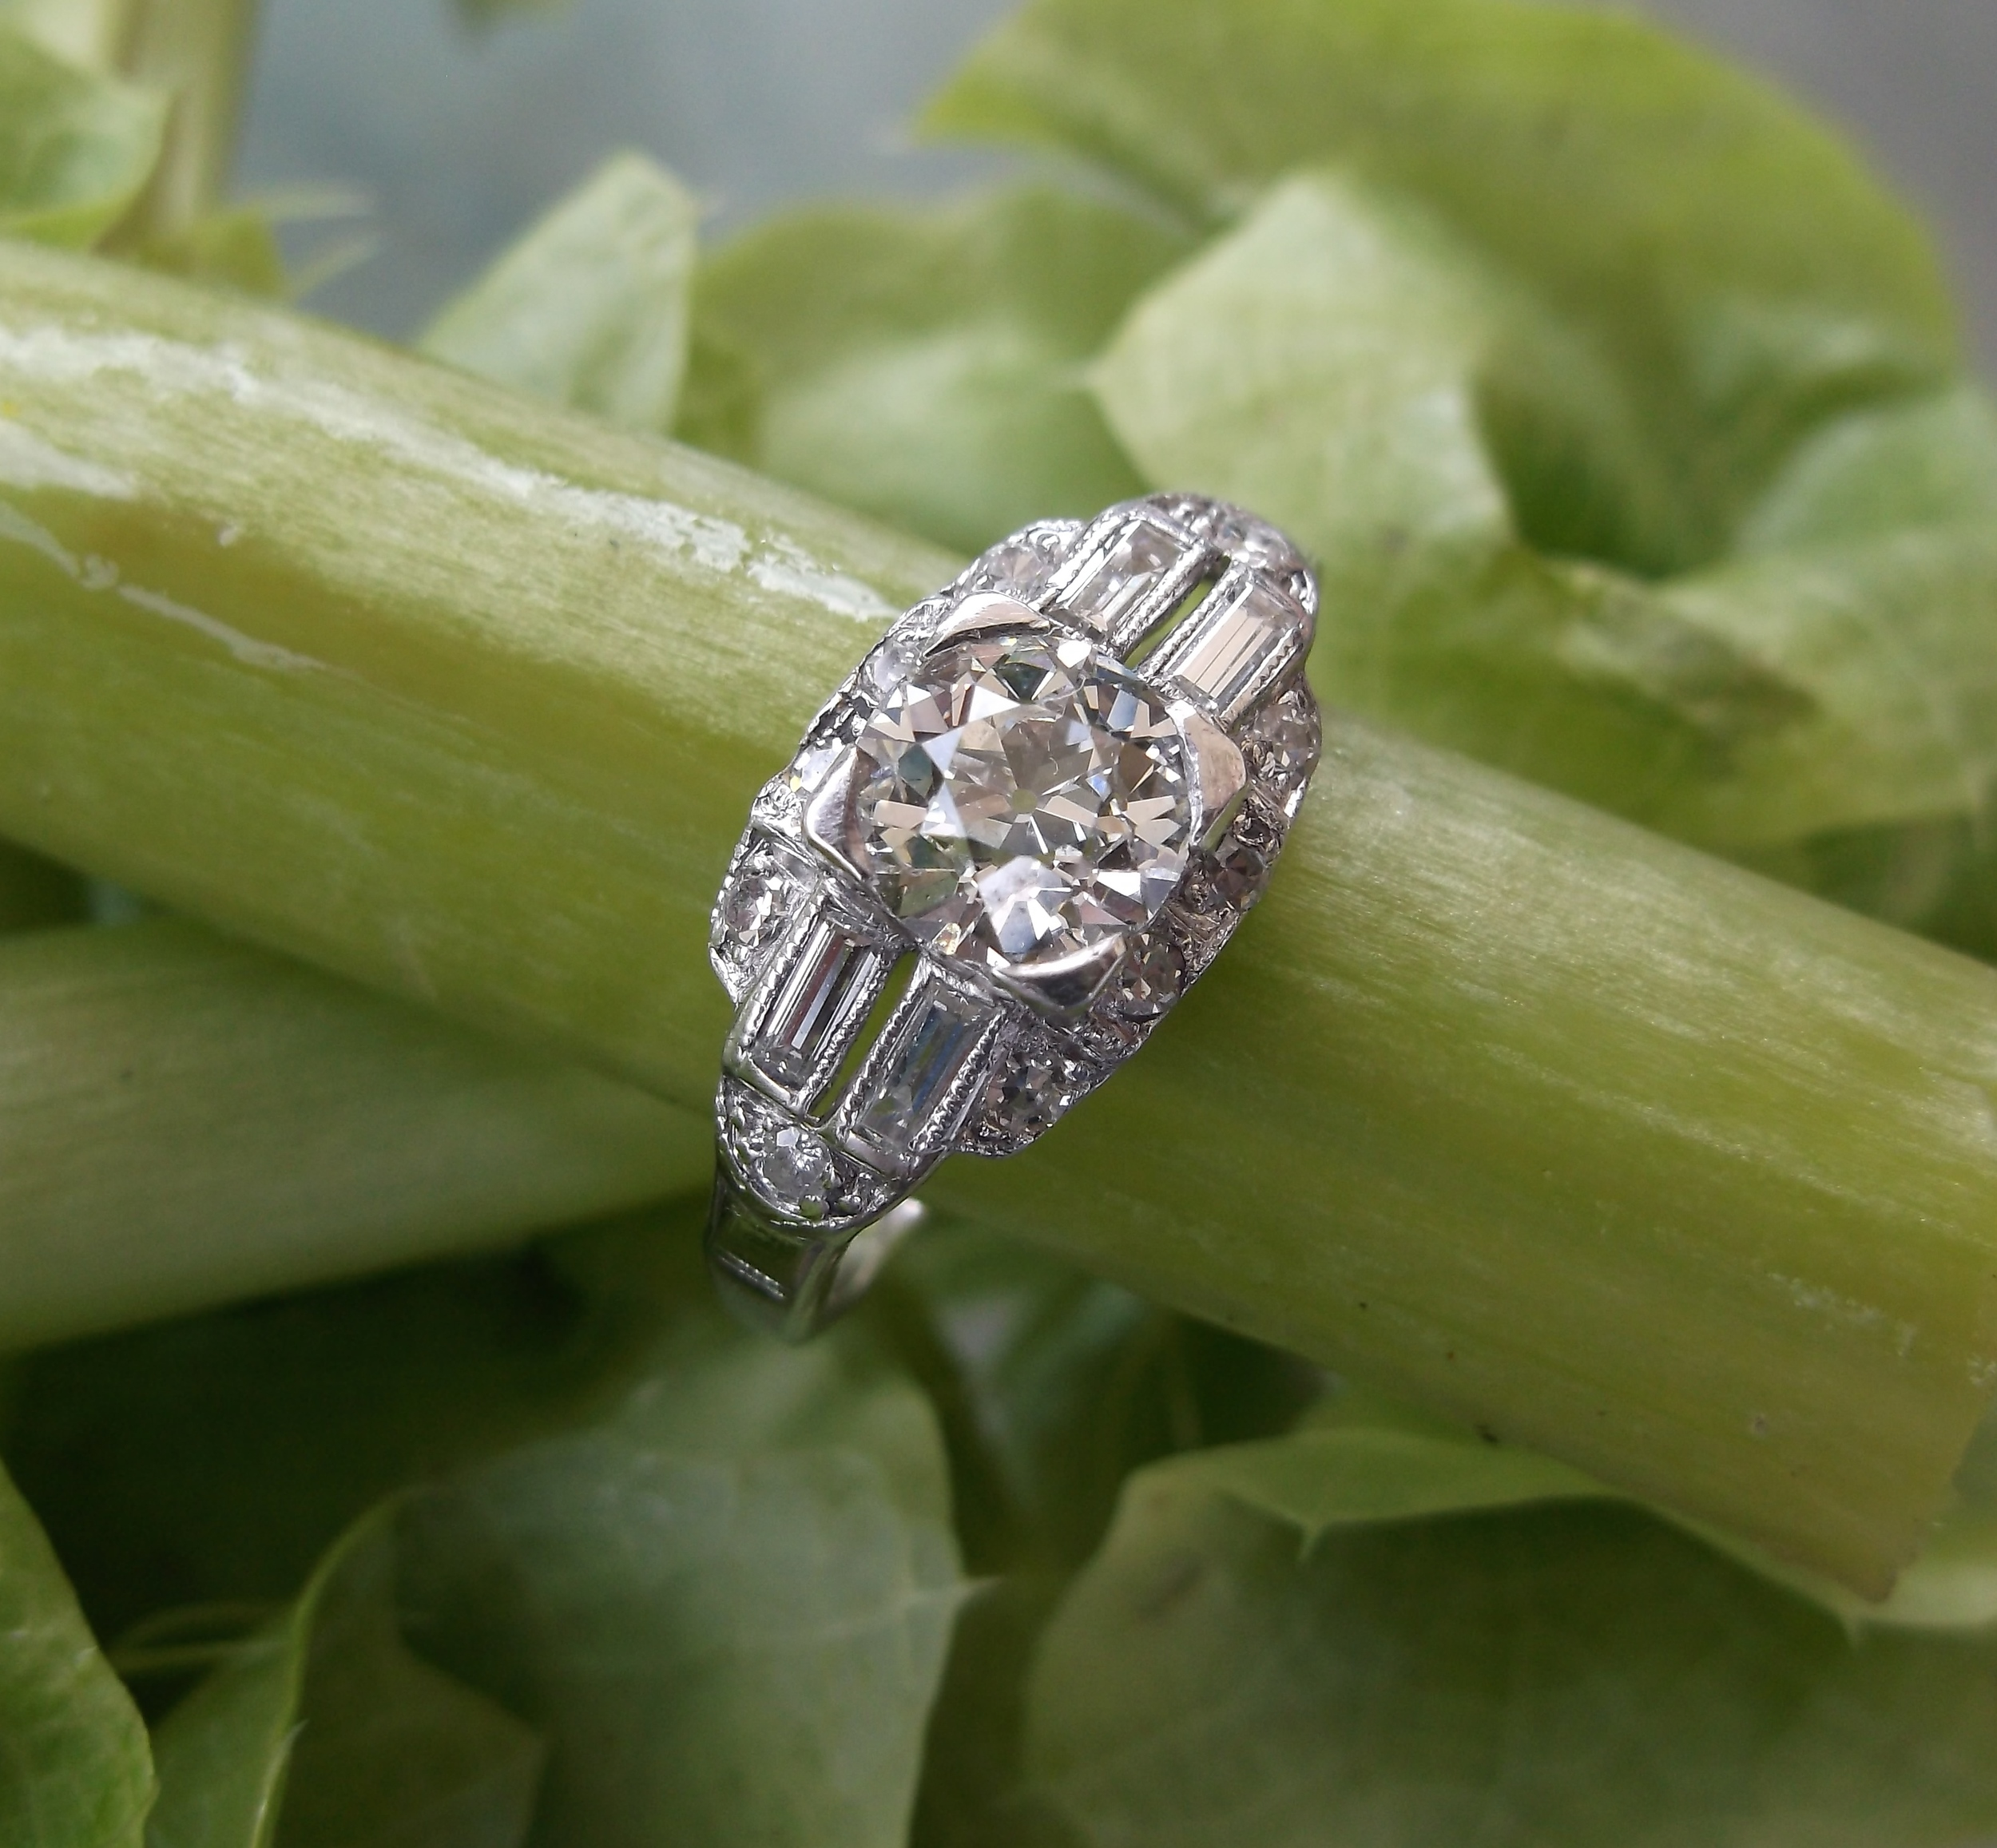 SOLD - Classic Art Deco 0.70 carat Old European cut diamond set in platinum ring with round and baguette diamond detail.